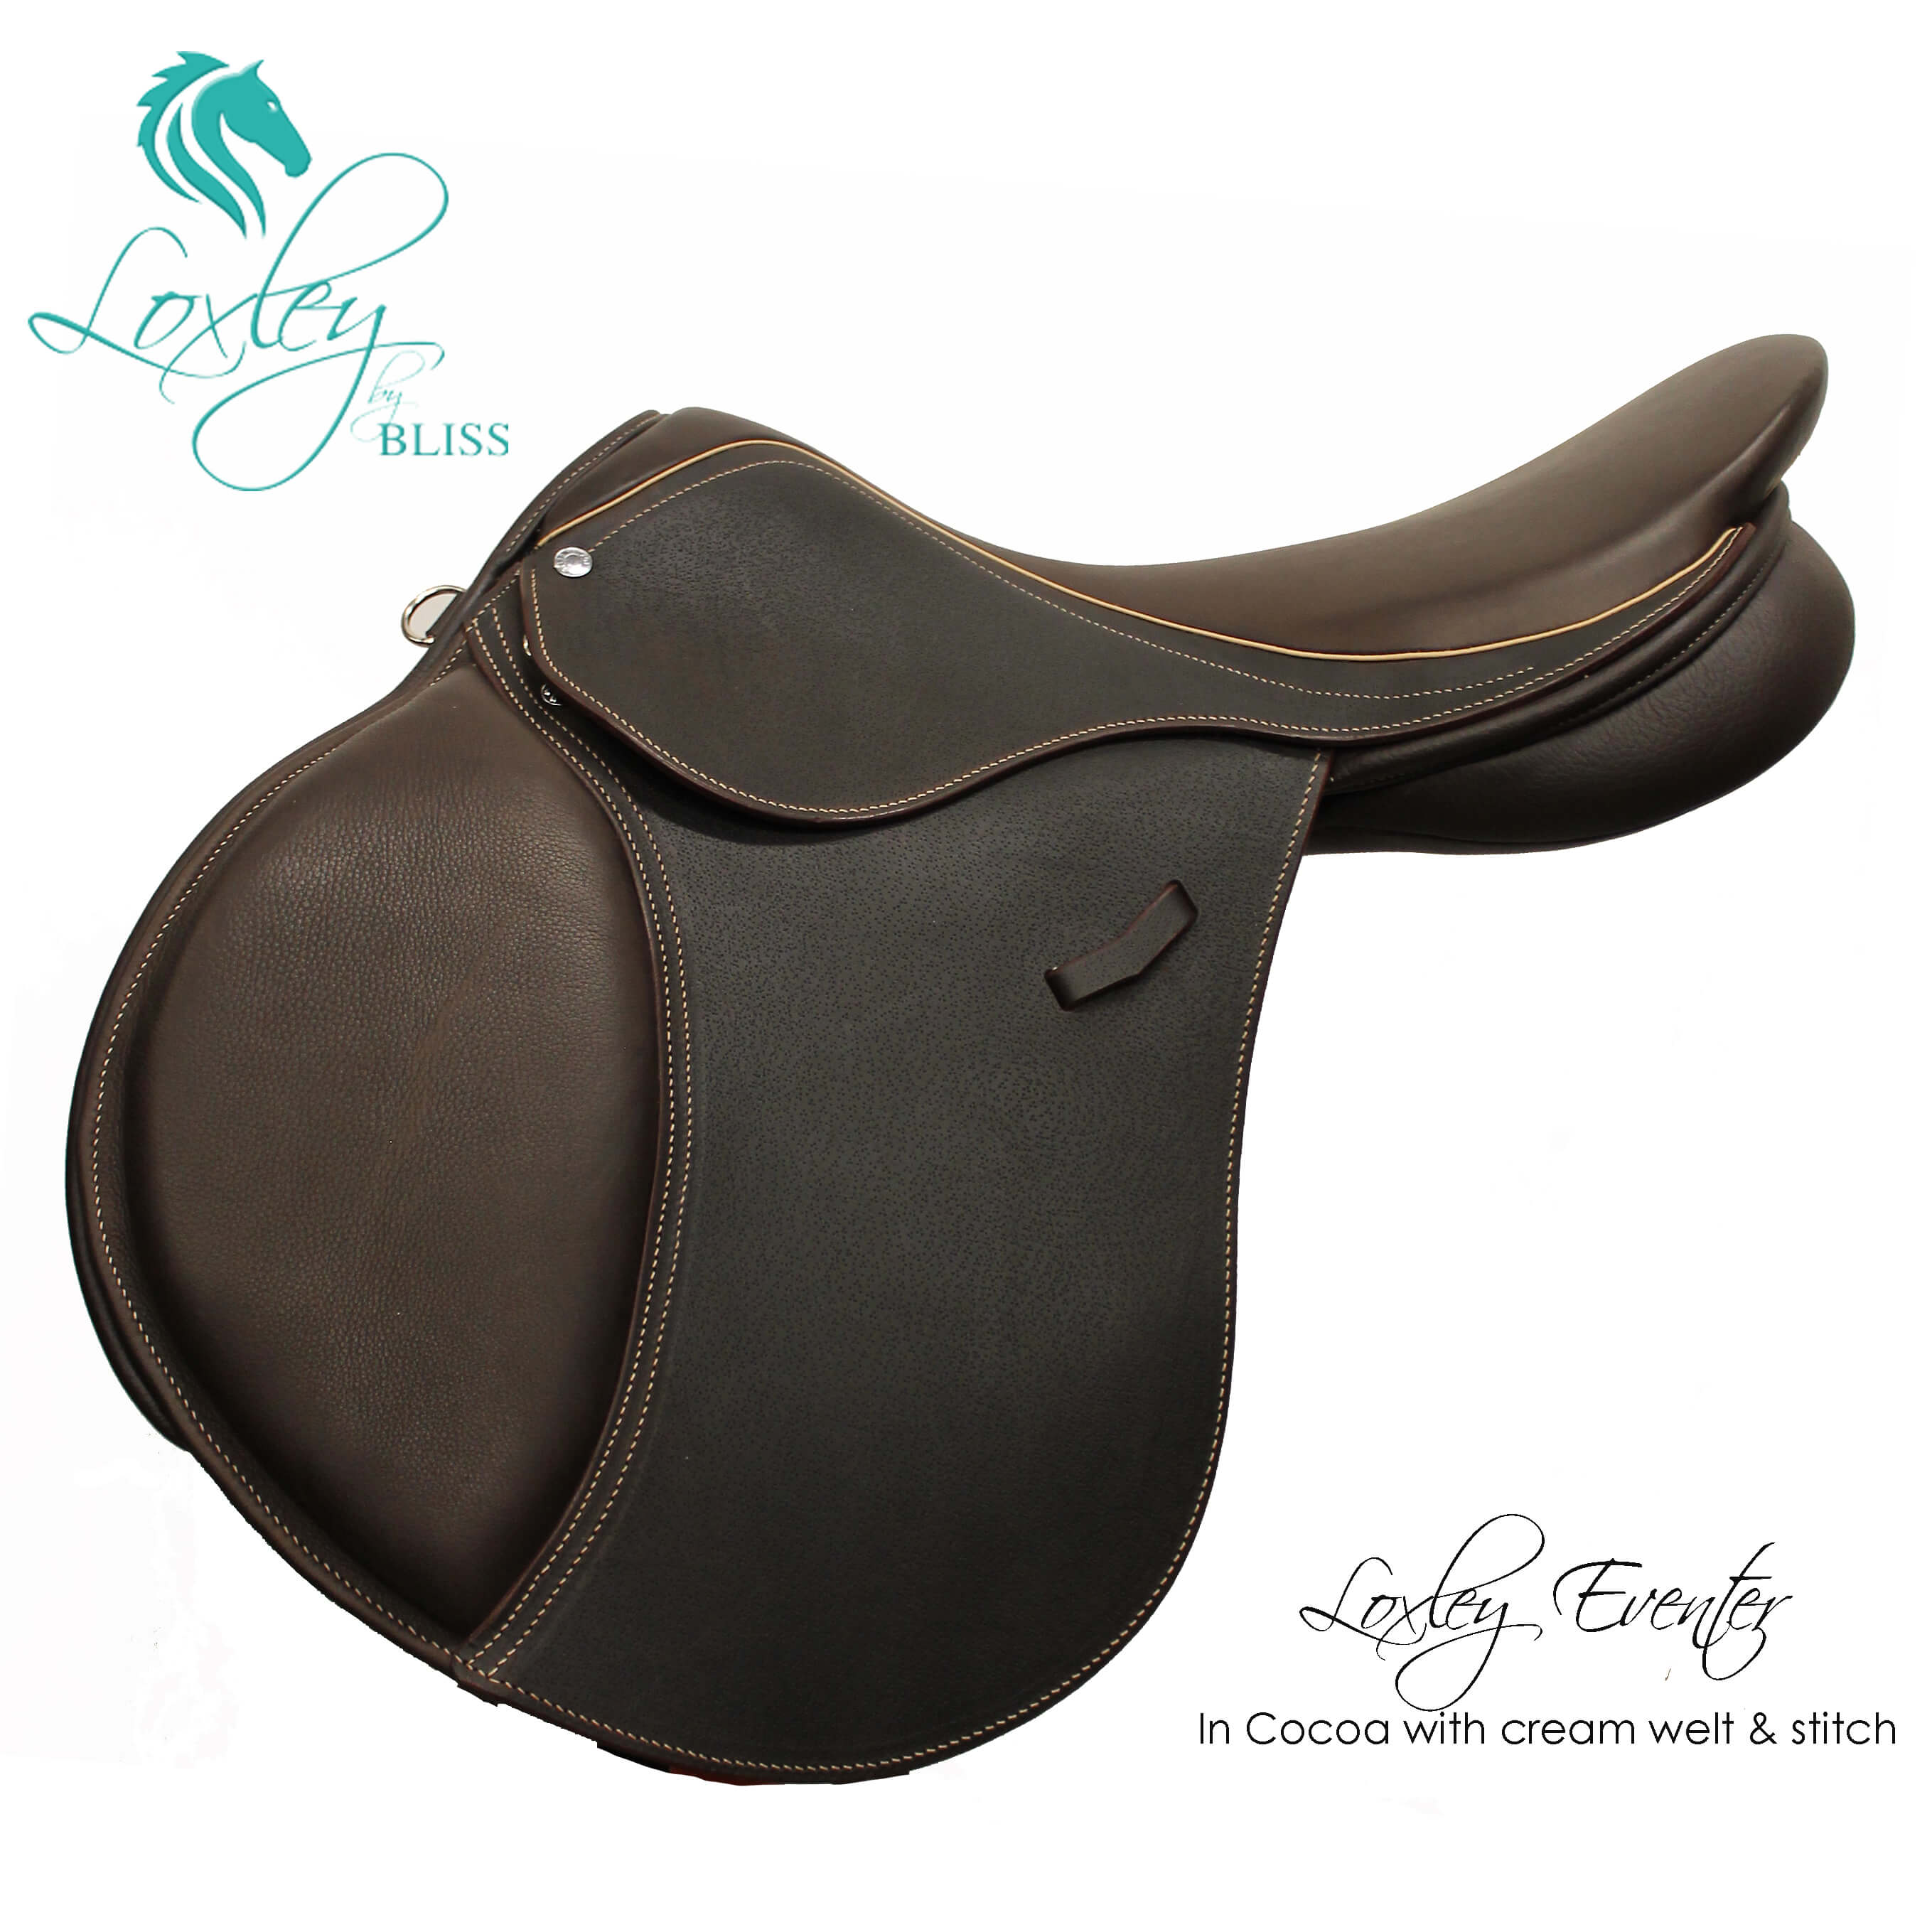 Loxley eventer cocoa & cream